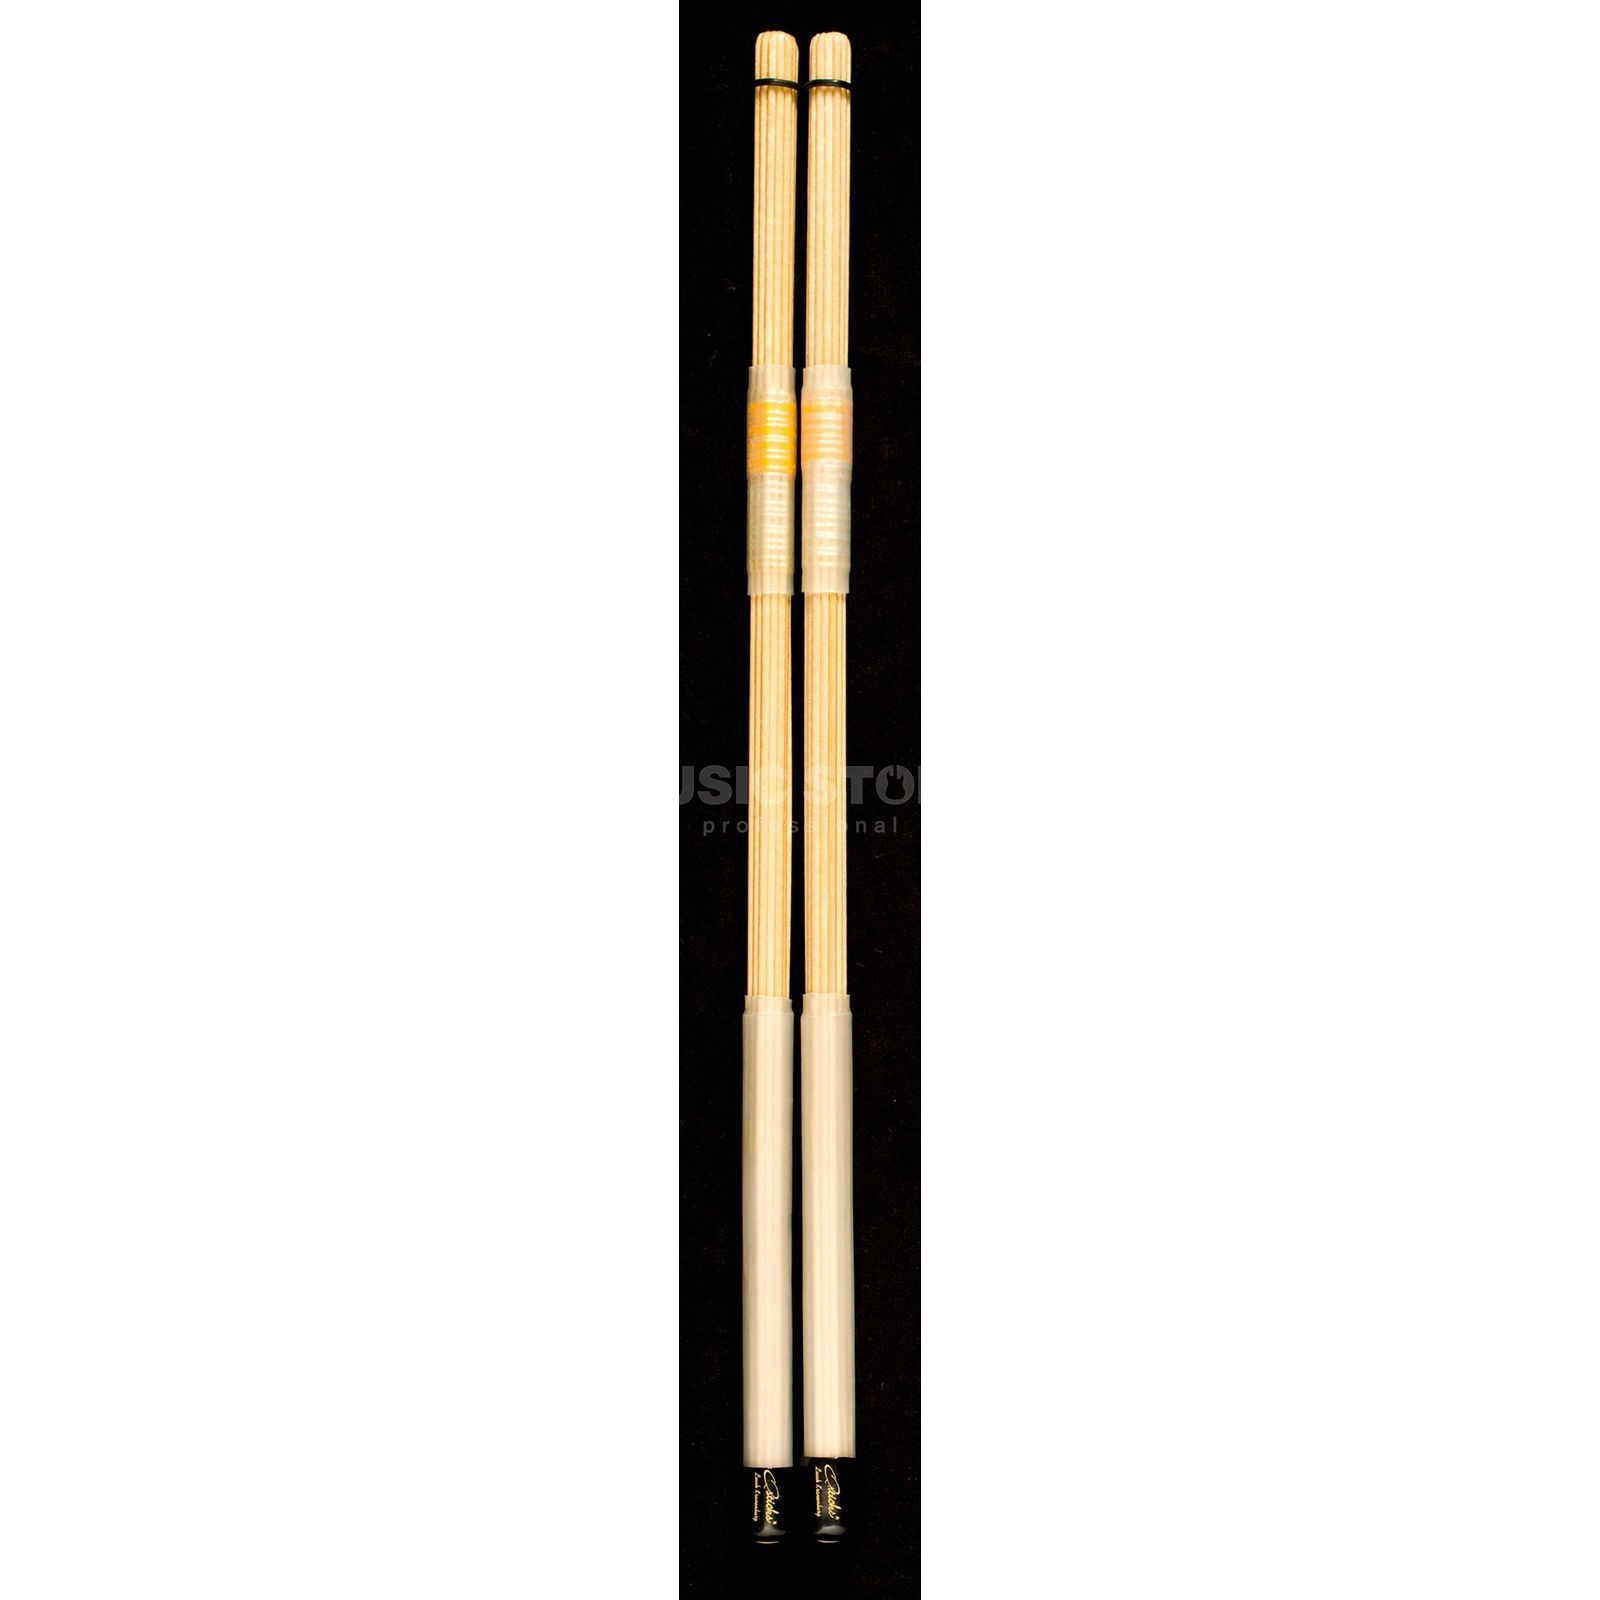 QPercussion QSticks/Rods Whisper 7A, Natural Produktbild